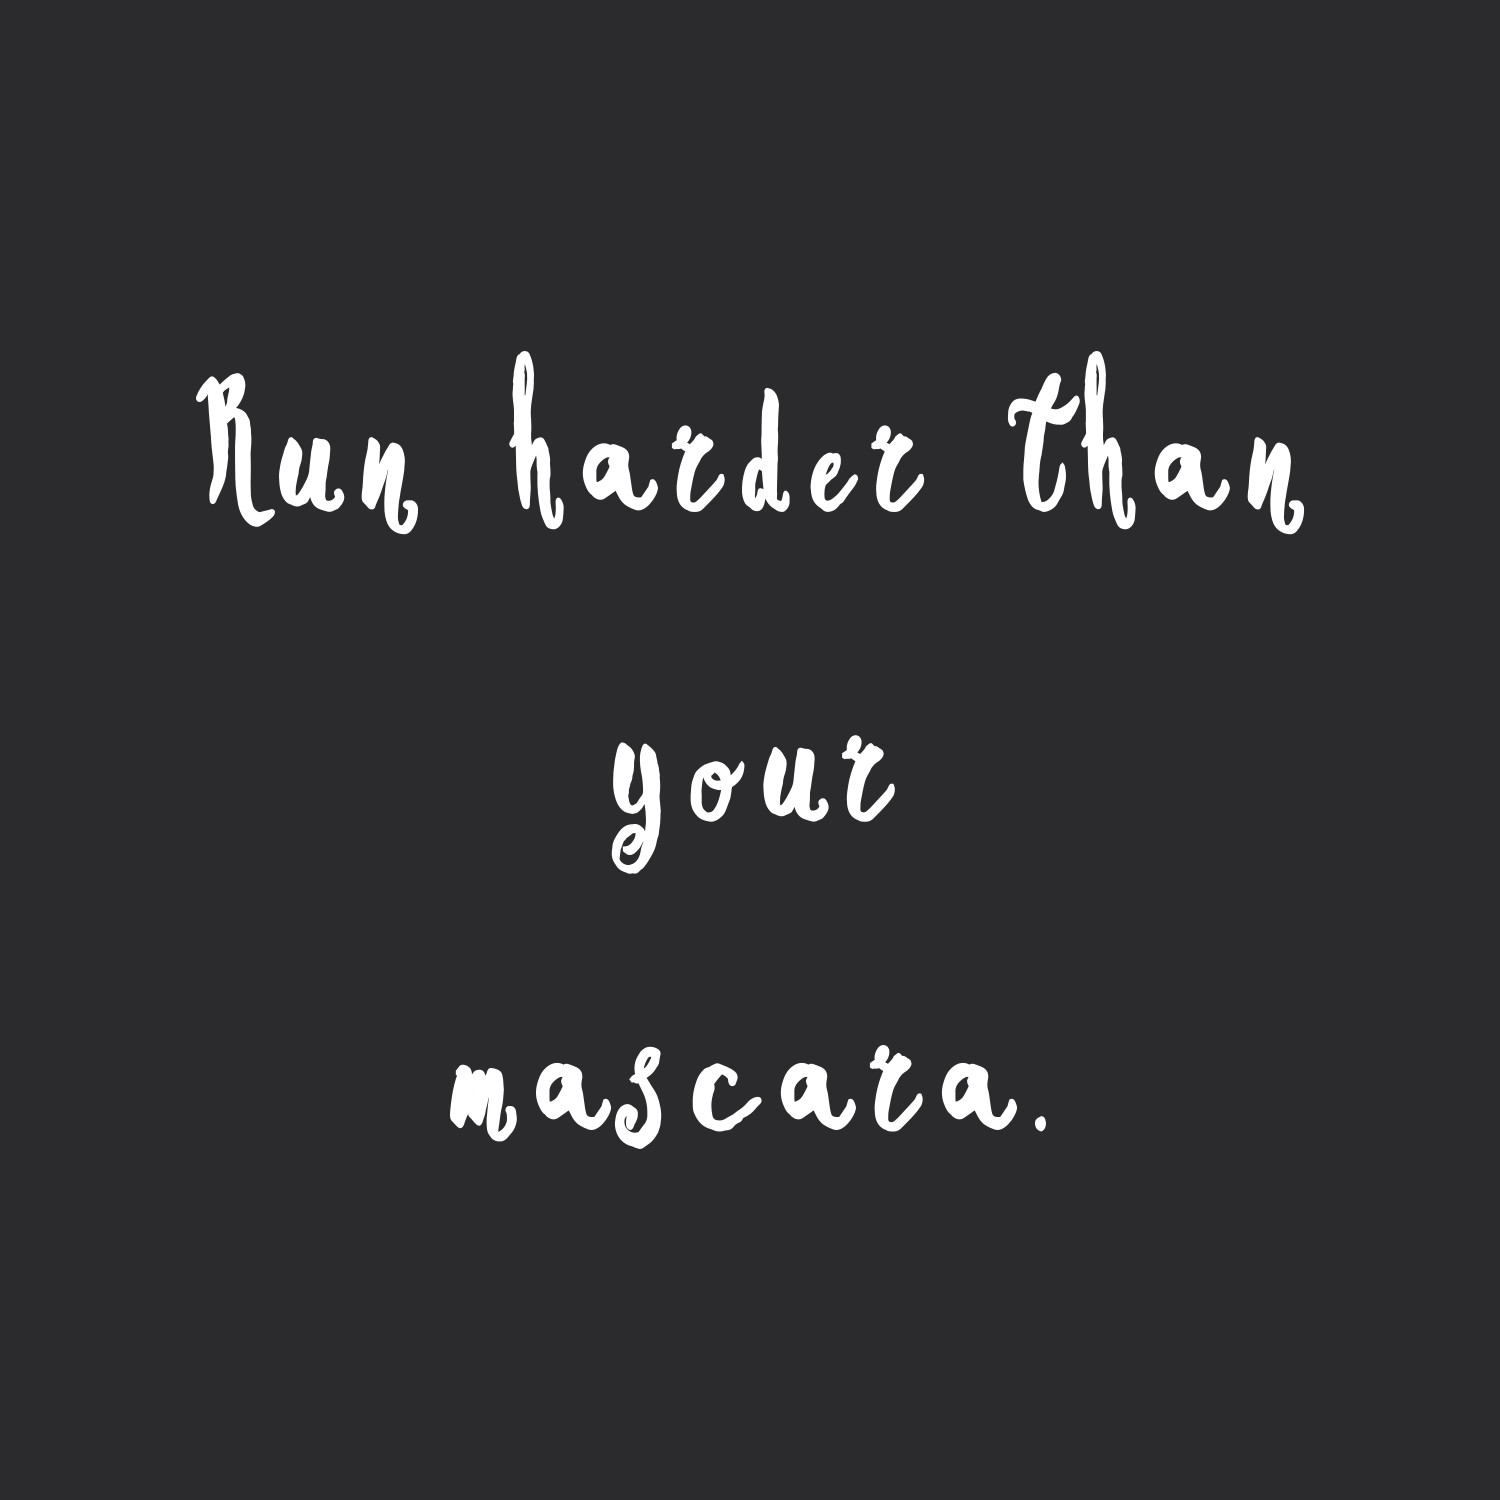 Run harder than your mascara! Browse our collection of exercise and healthy eating inspirational quotes and get instant fitness and weight loss motivation. Transform positive thoughts into positive actions and get fit, healthy and happy! https://www.spotebi.com/workout-motivation/run-harder-than-your-mascara/